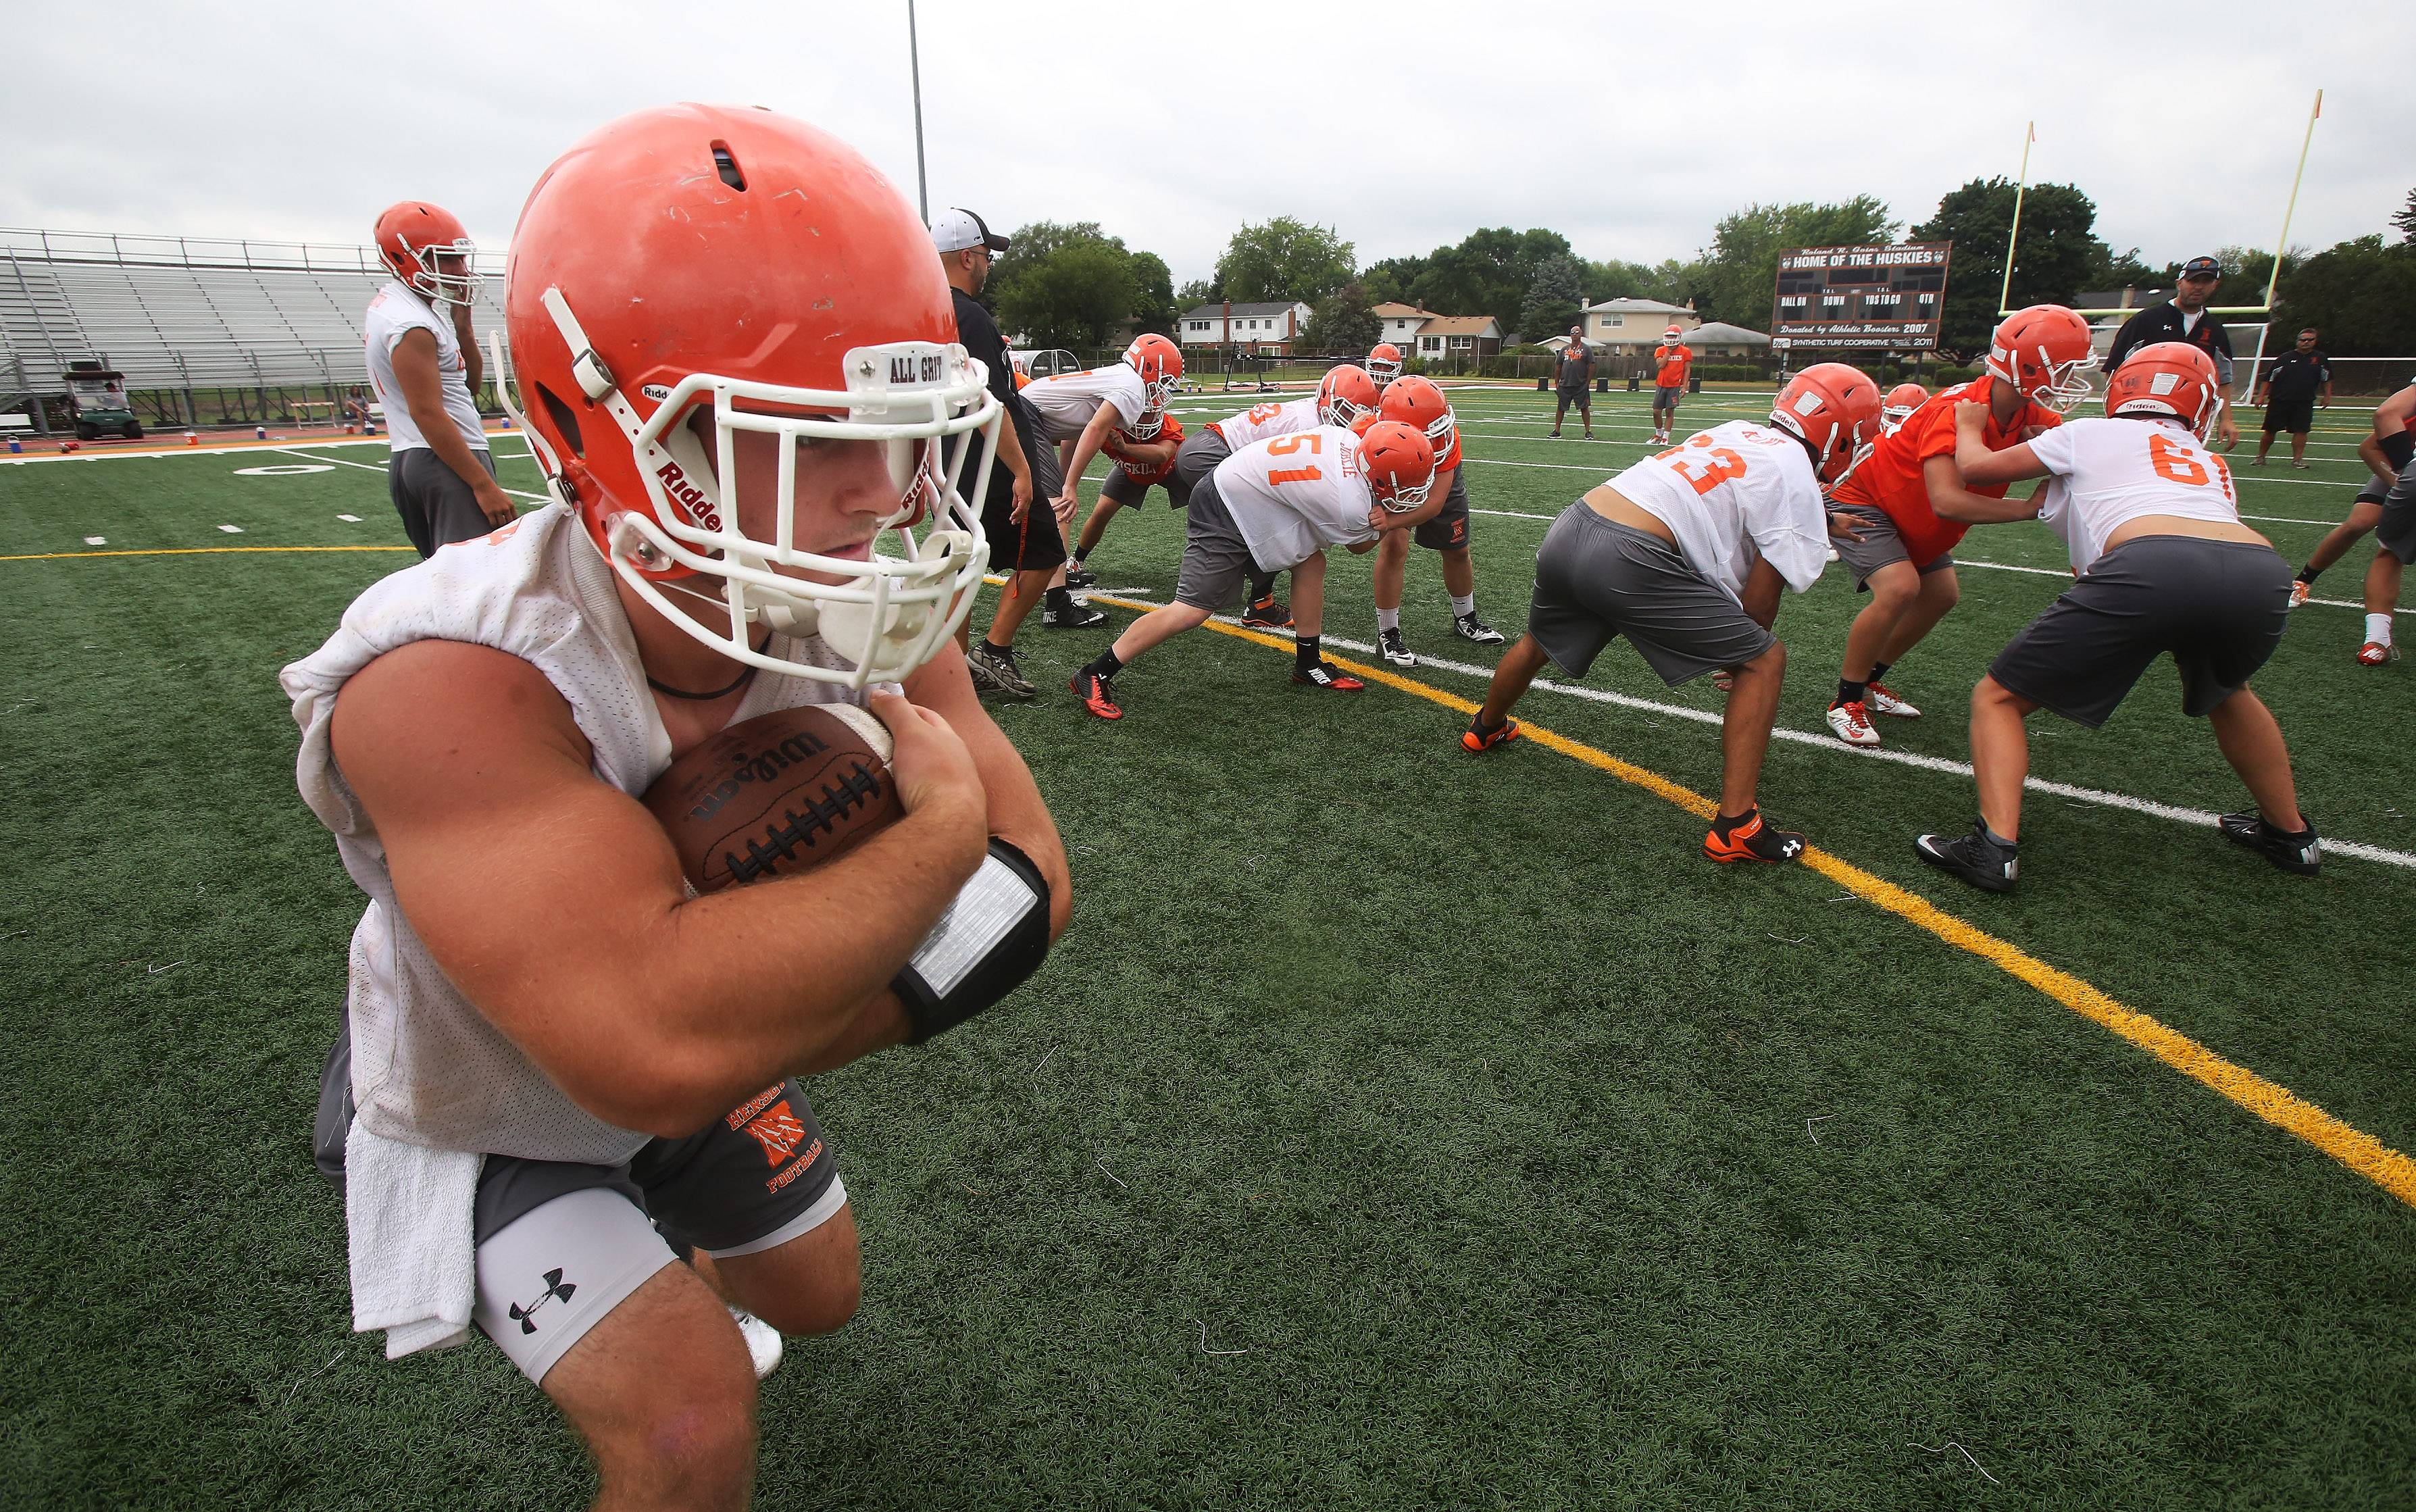 Running back Chase Bandolik carries the ball during the first day of football practice at Hersey High School on Monday.